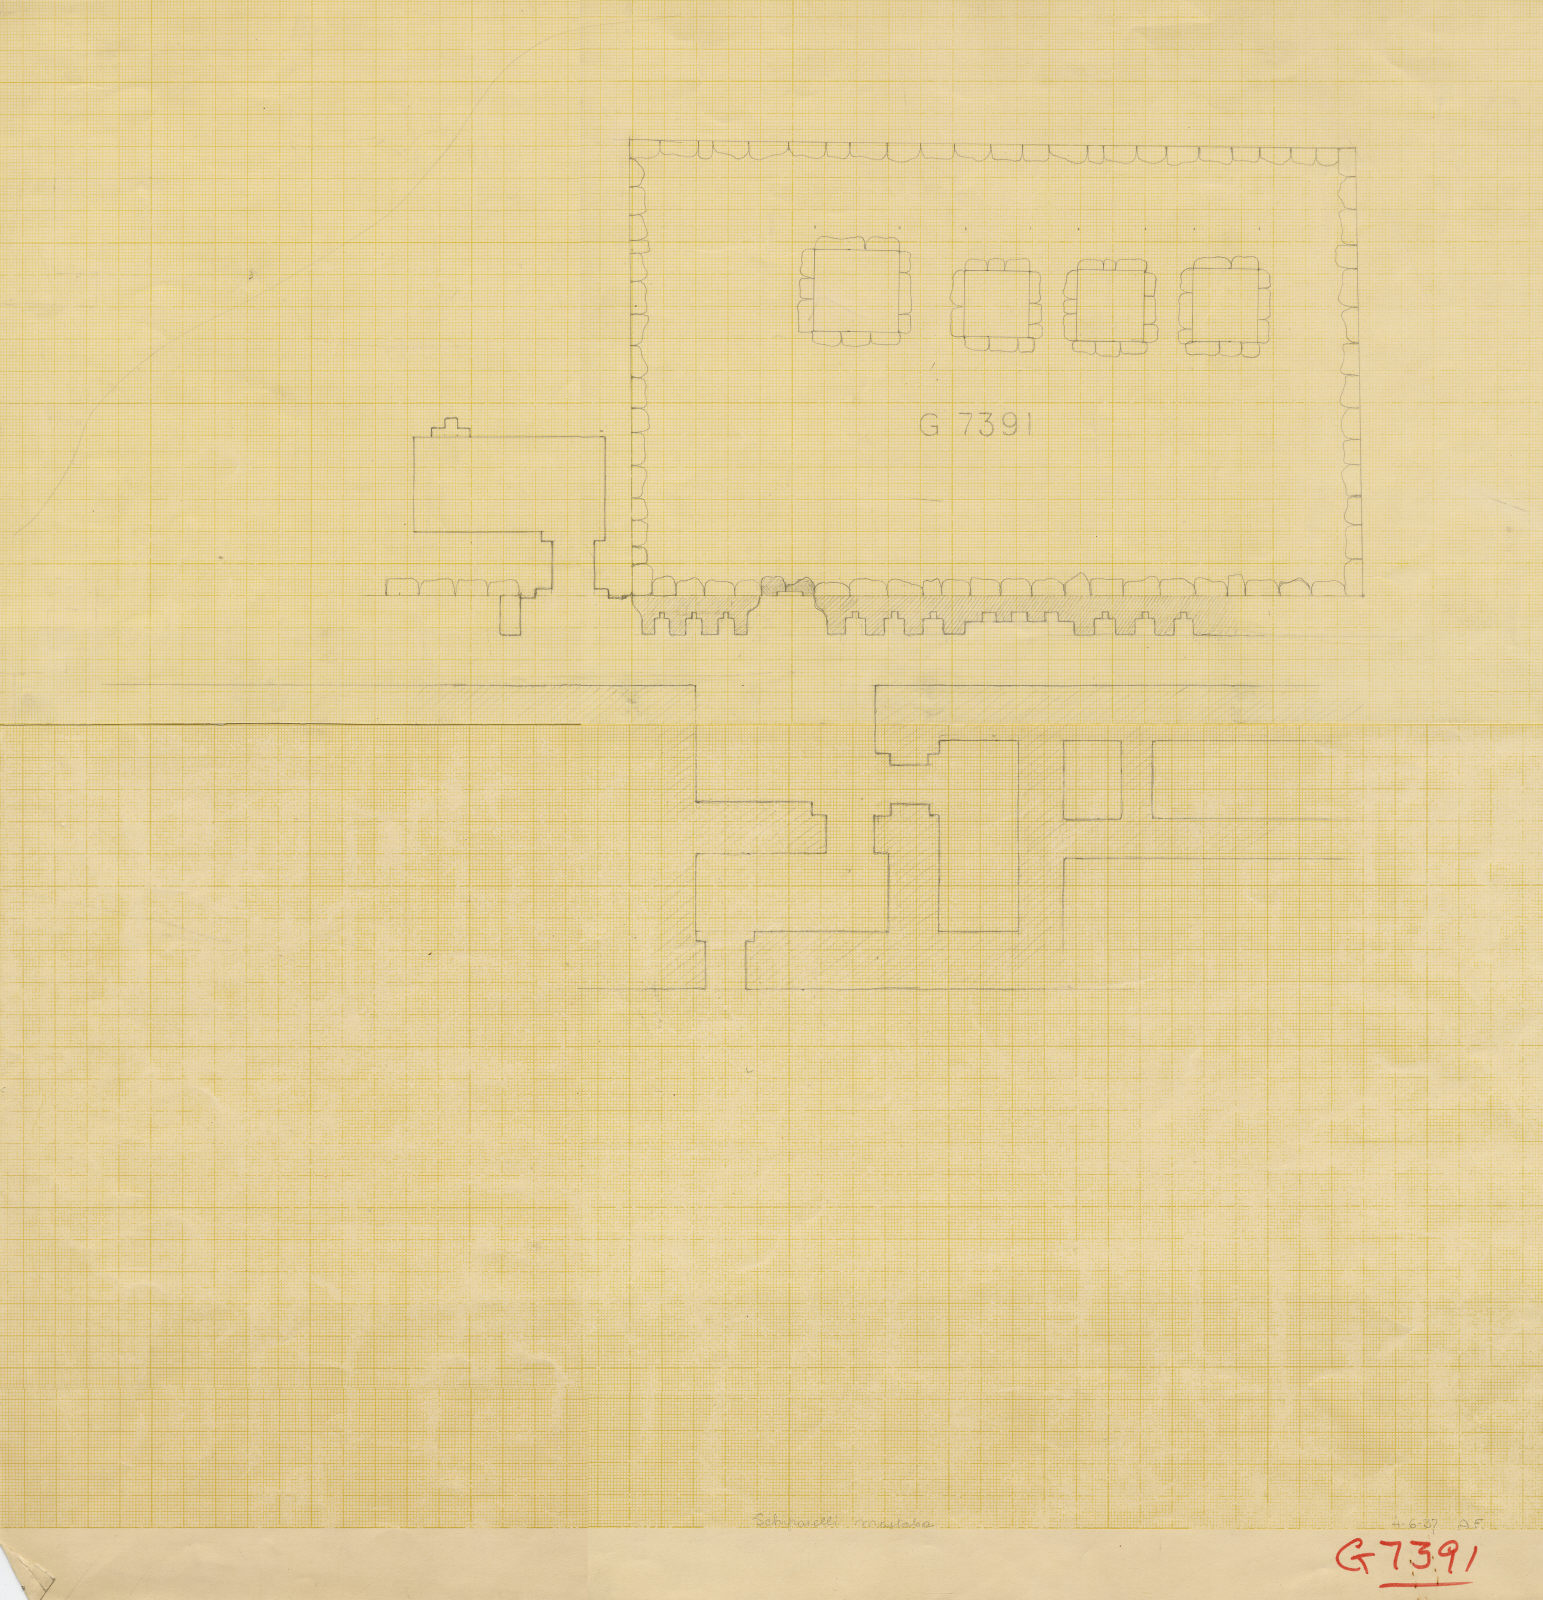 Maps and plans: G 7391, Plan